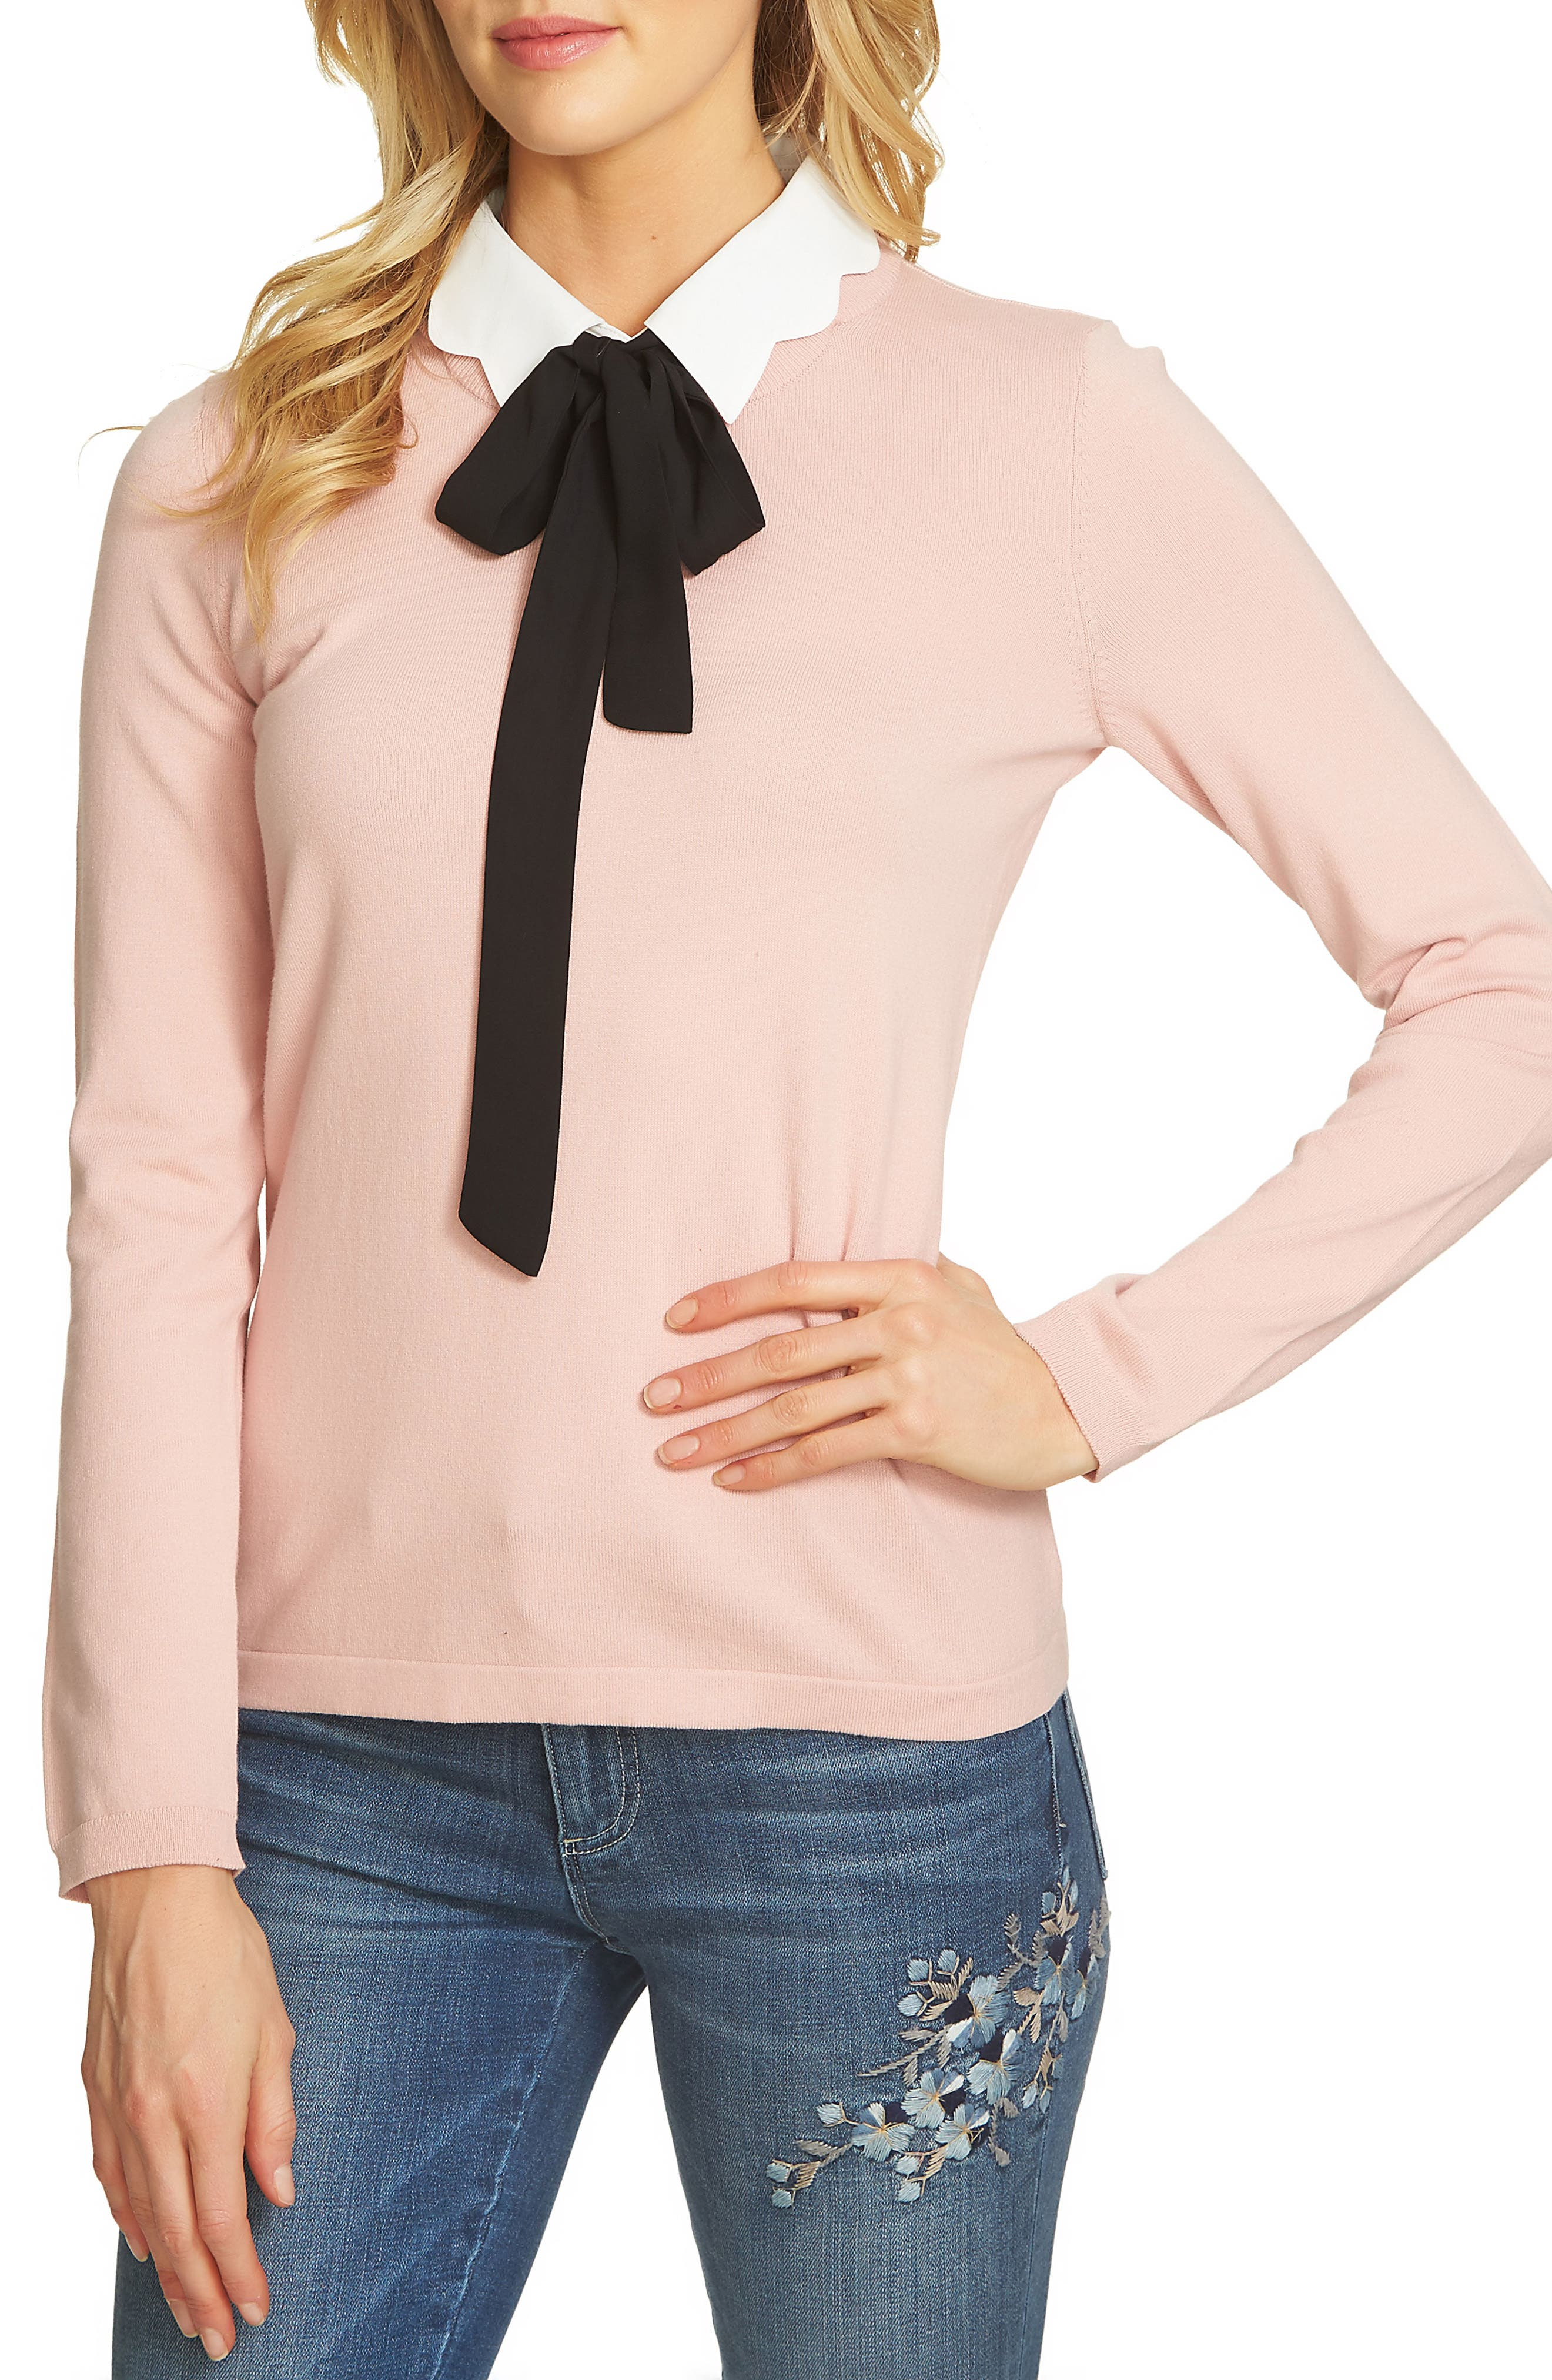 Alternate Image 1 Selected - CeCe Scalloped Tie Collar Sweater